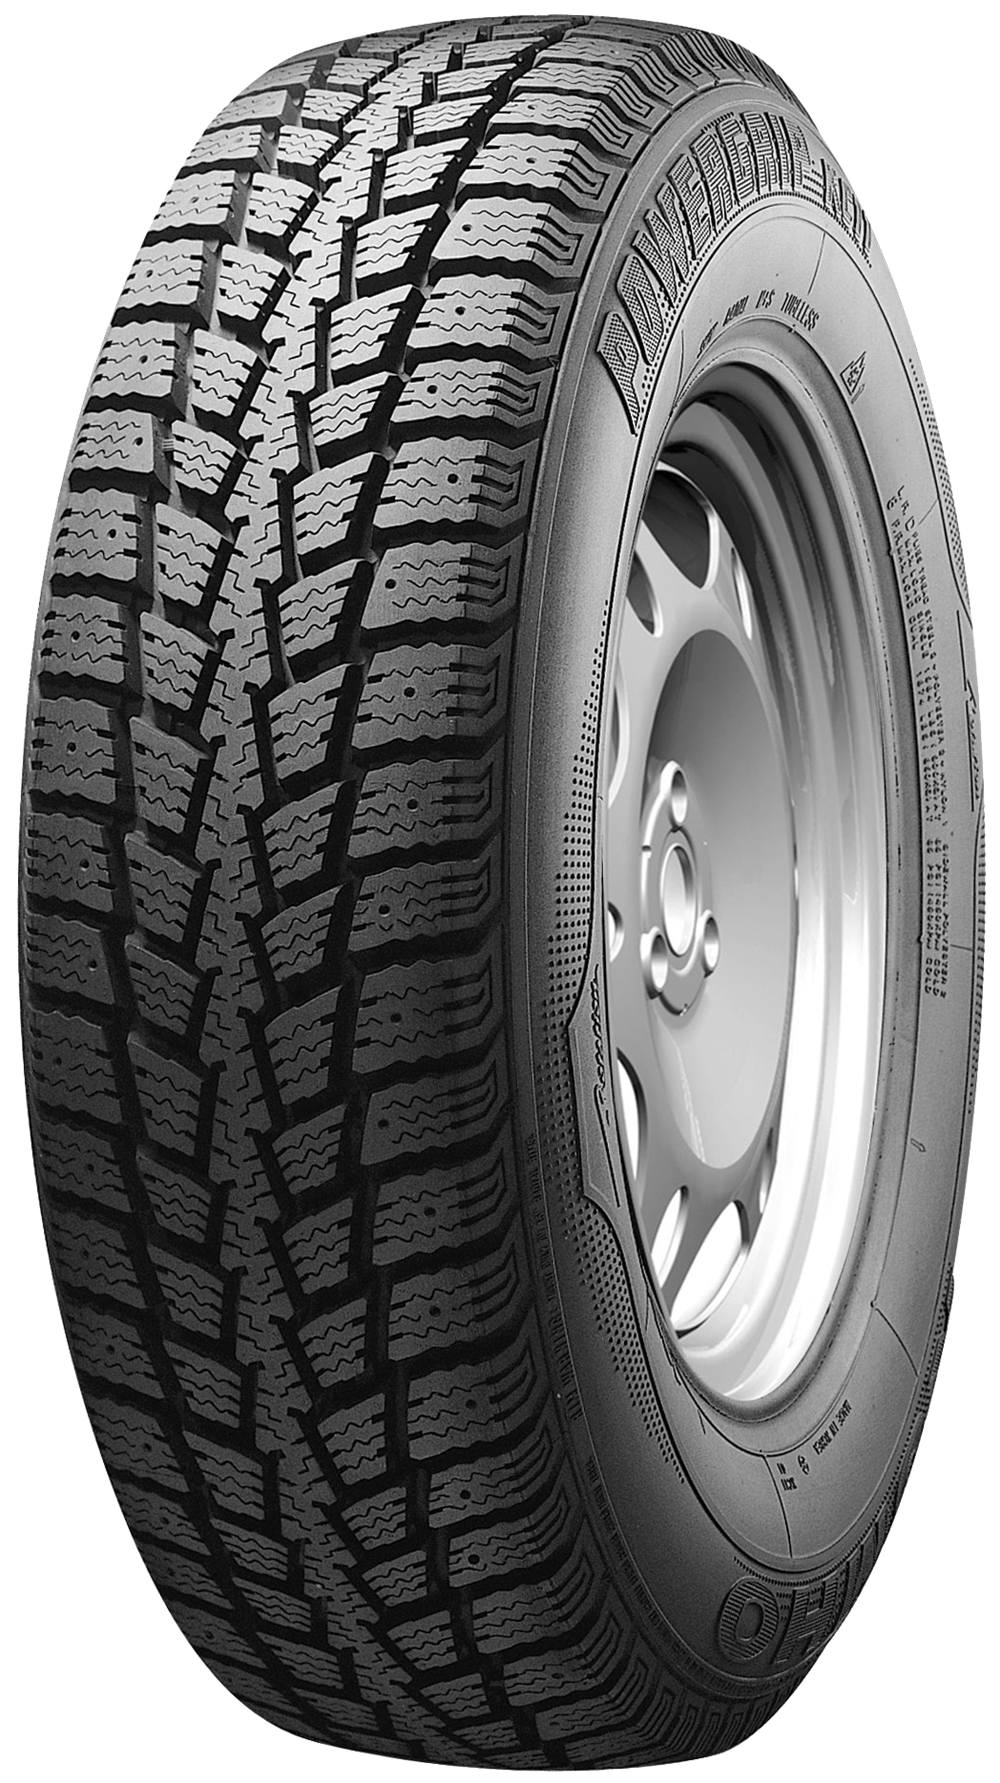 KUMHO POWER GRIP KC11 225/75 R 16